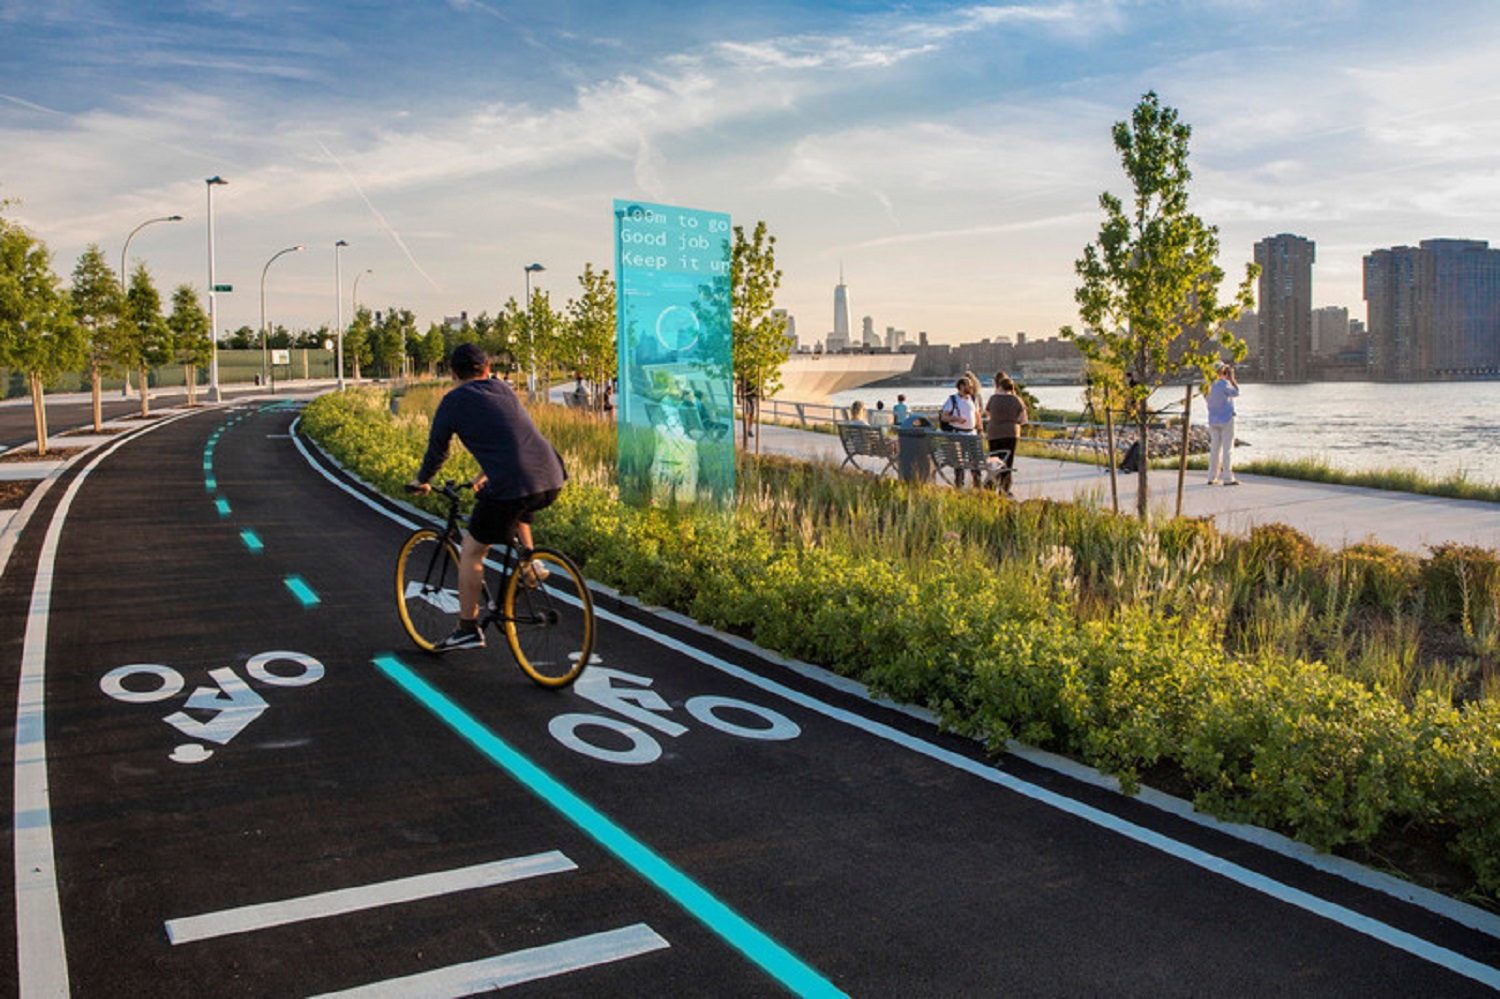 Park of the Future: The City of Laval, Canada